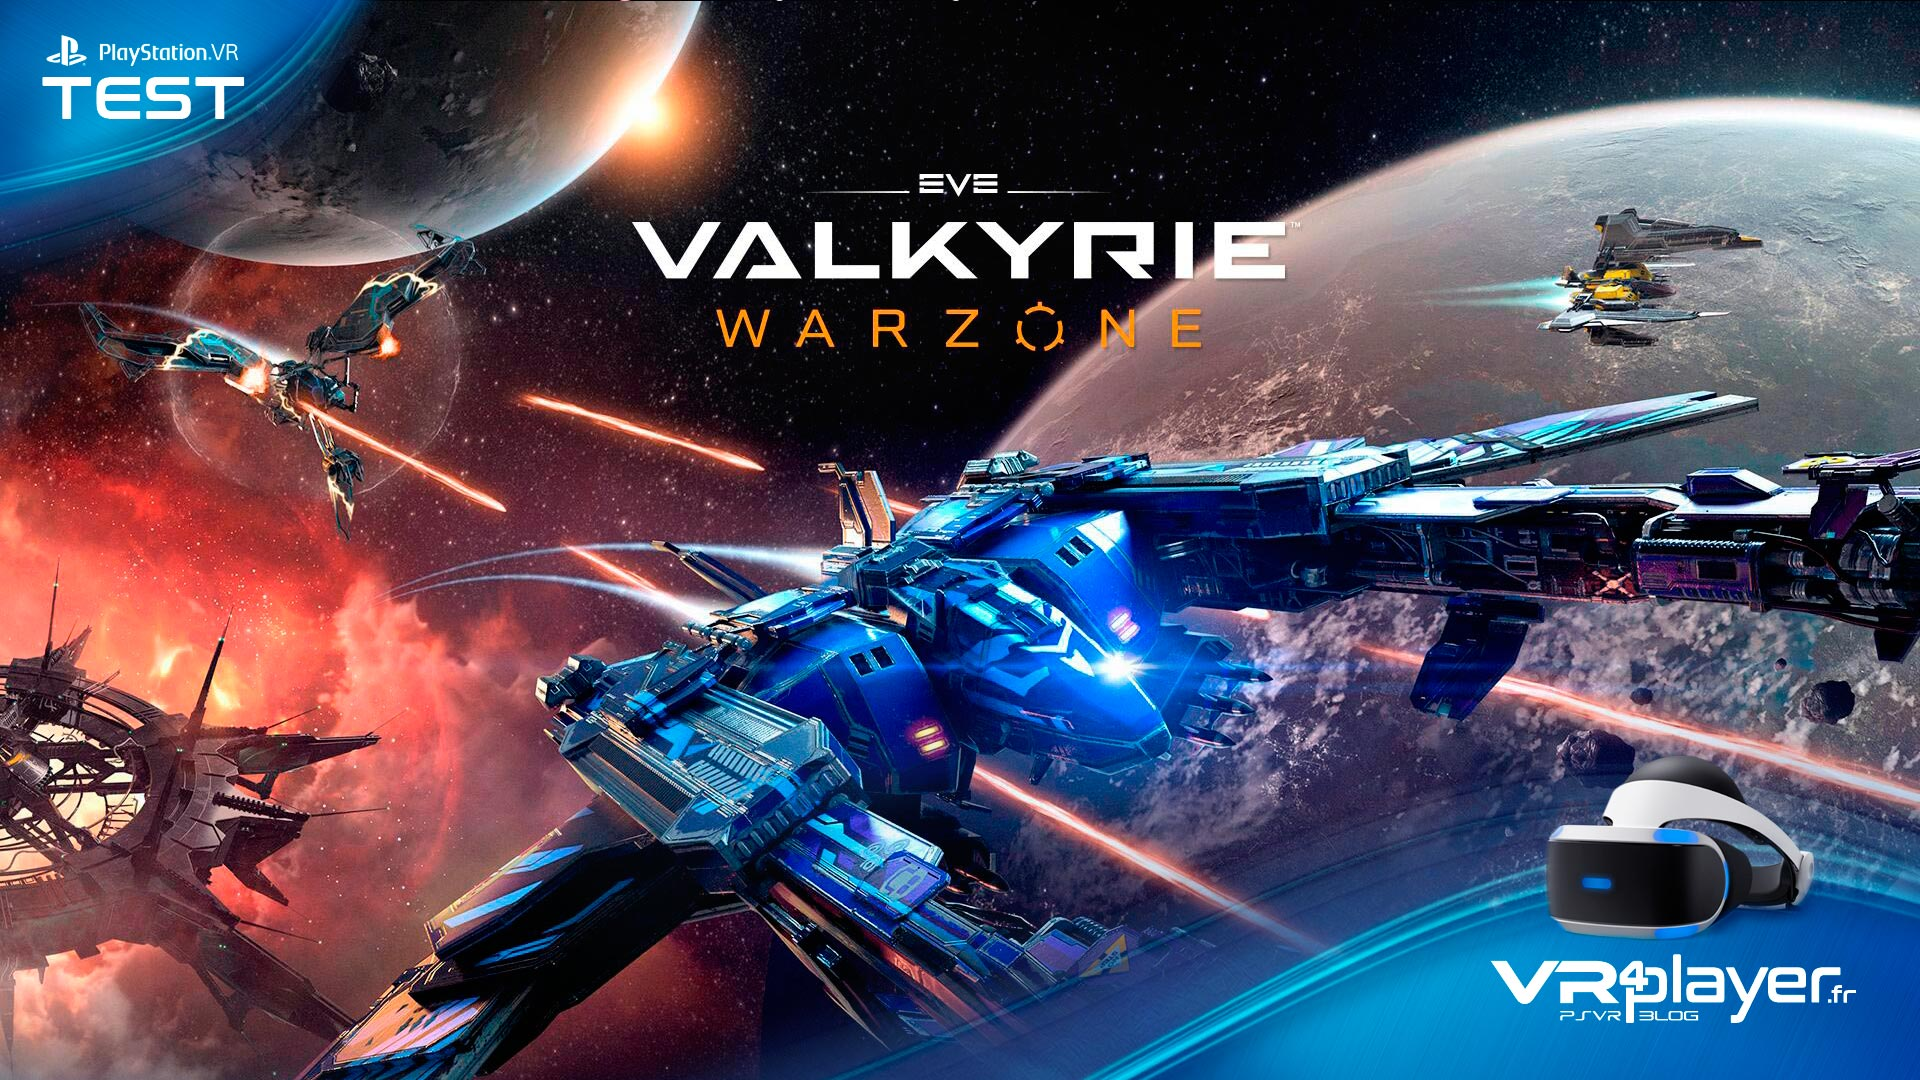 Eve Valkyrie test review VR4player